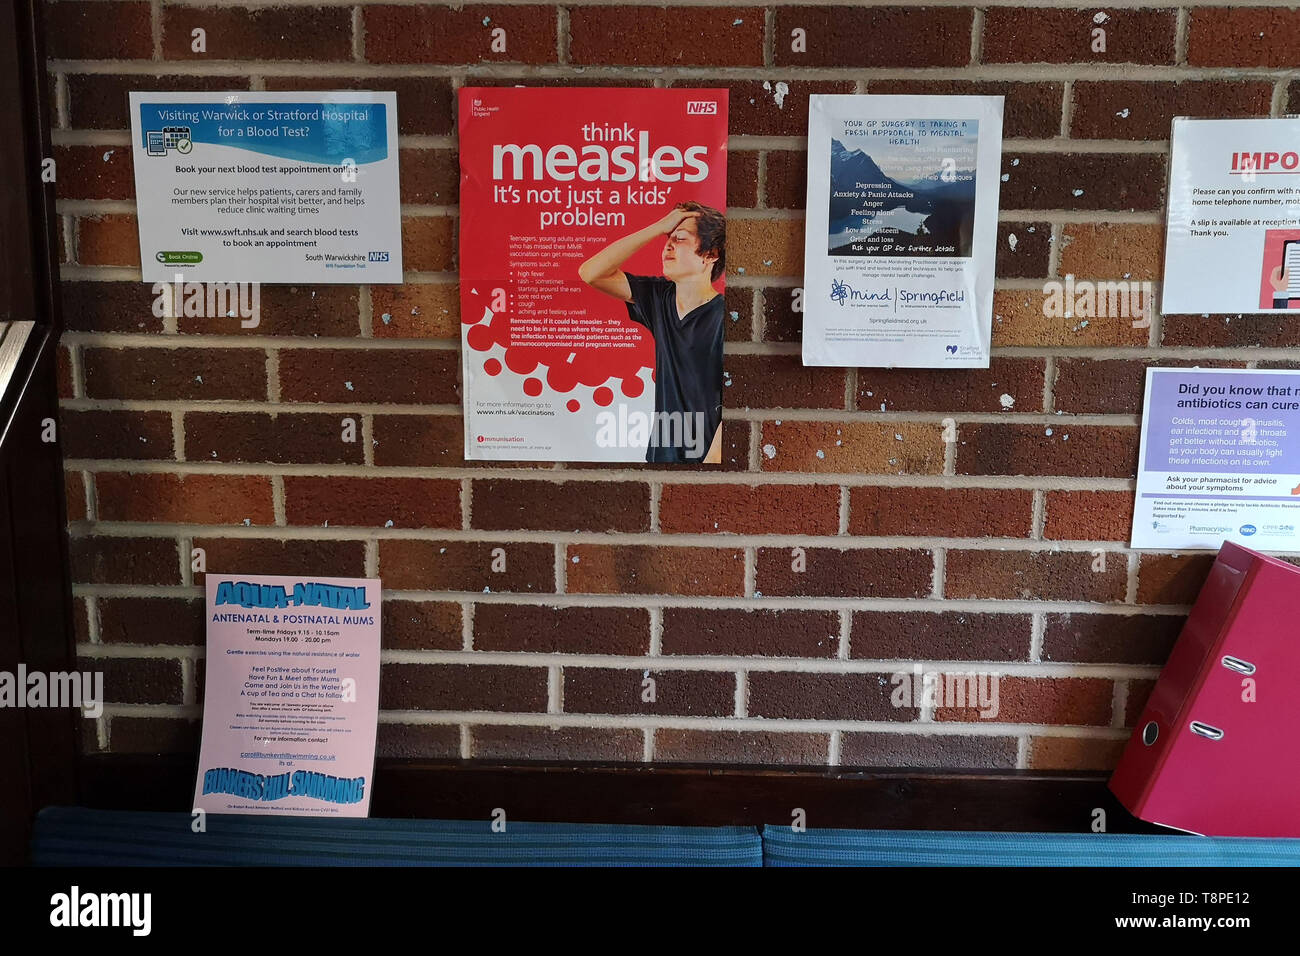 A poster with advice for patients about measles is seen in an NHS local doctors surgery waiting room in Warwickshire, UK, On May 14, 2019. Stock Photo